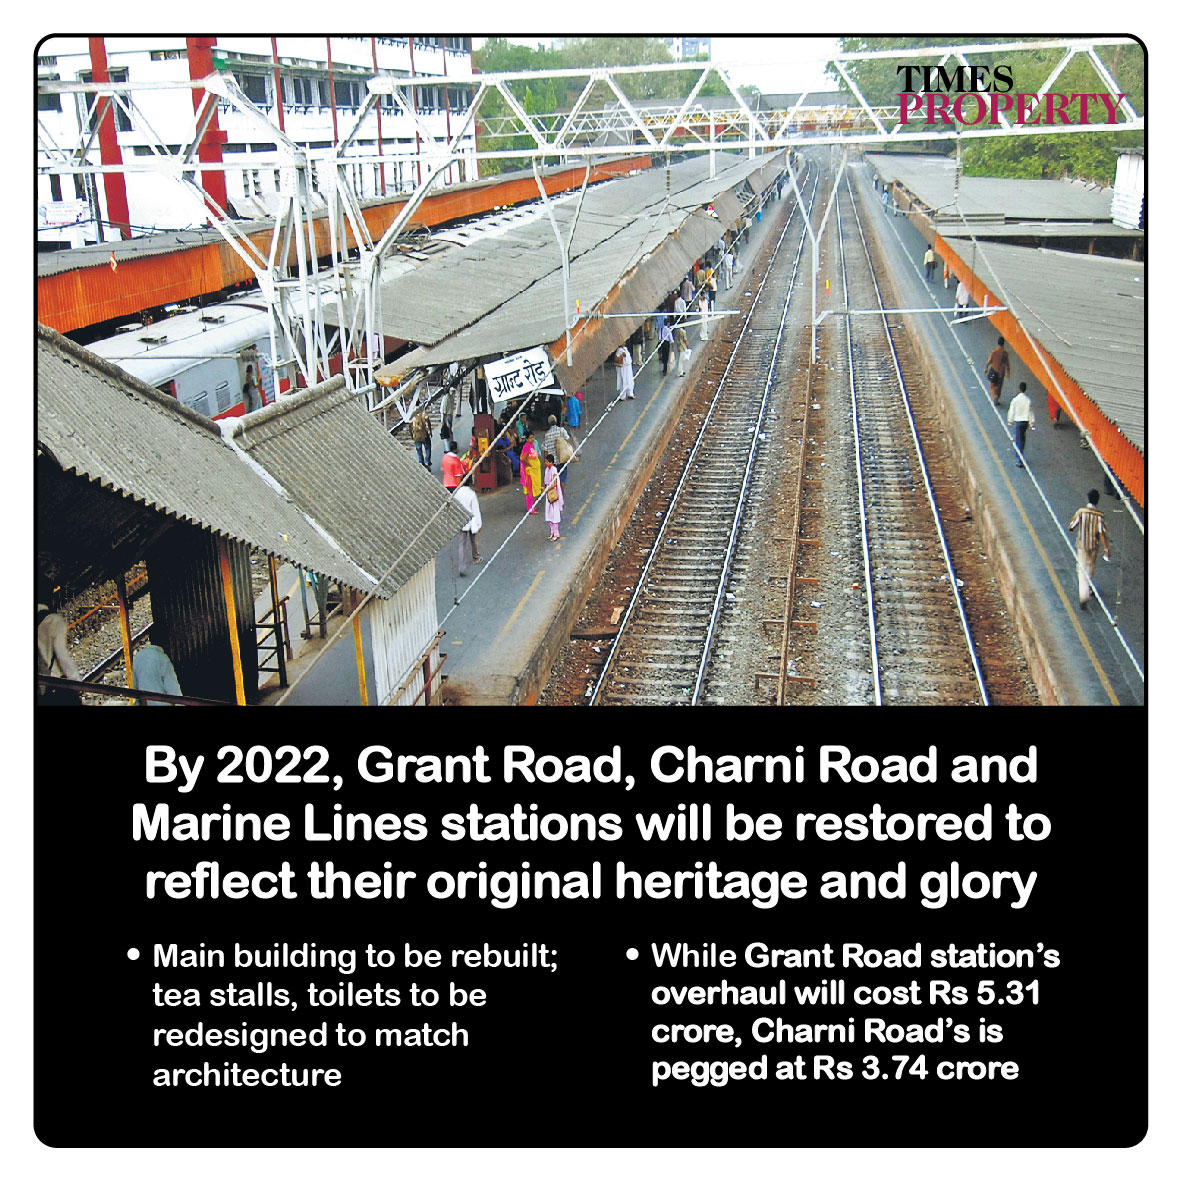 By 2022, #GrantRoad, #CharniRoad and #MarineLines stations will be restored to reflect their original heritage and glory.   https:// epaper.timesgroup.com/Olive/ODN/Mumb aiMirror/shared/ShowArticle.aspx?doc=MMIR%2F2019%2F12%2F16&entity=Ar00501&sk=2027A37F&mode=text   … <br>http://pic.twitter.com/mkk9i2Sy72